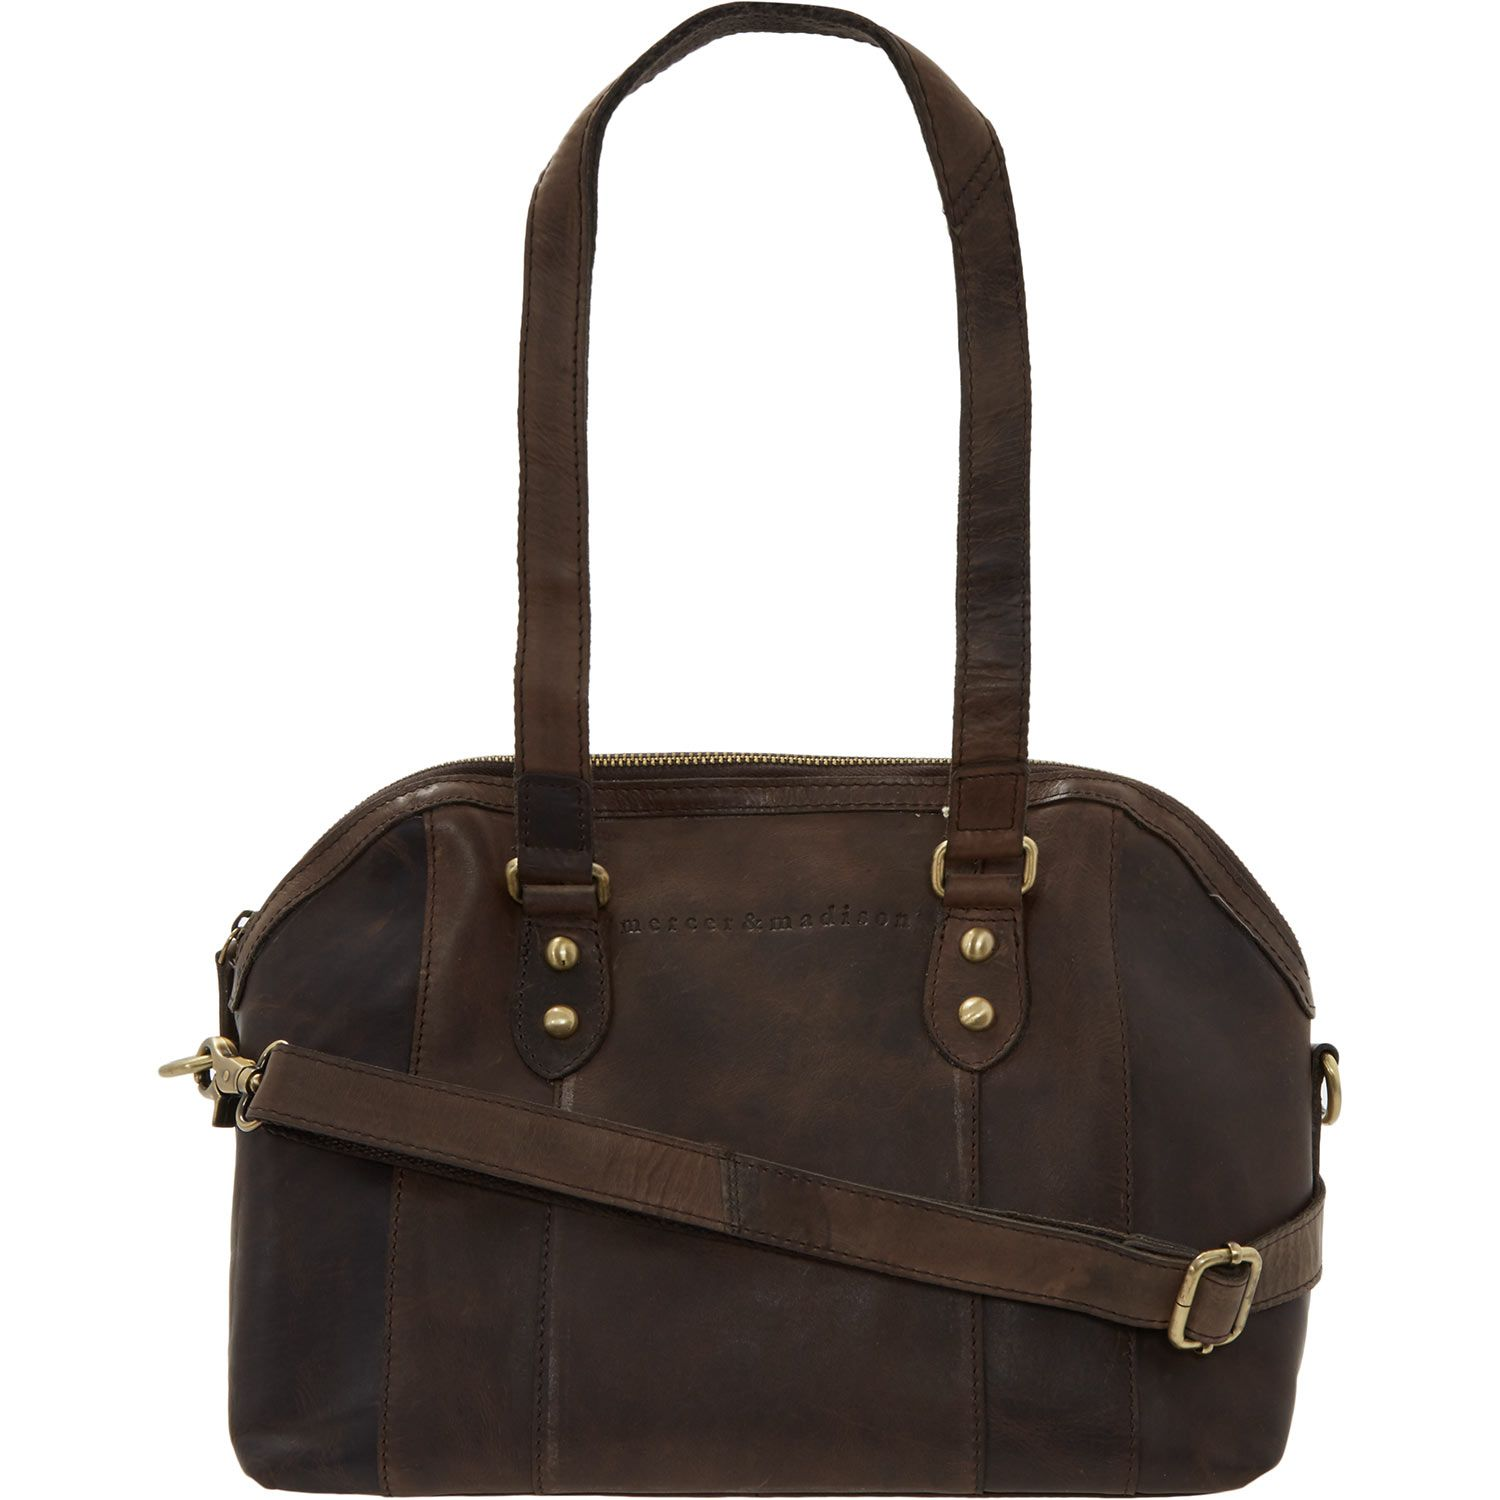 c50dd8a12b10 Tk Maxx Leather Bags | Stanford Center for Opportunity Policy in ...